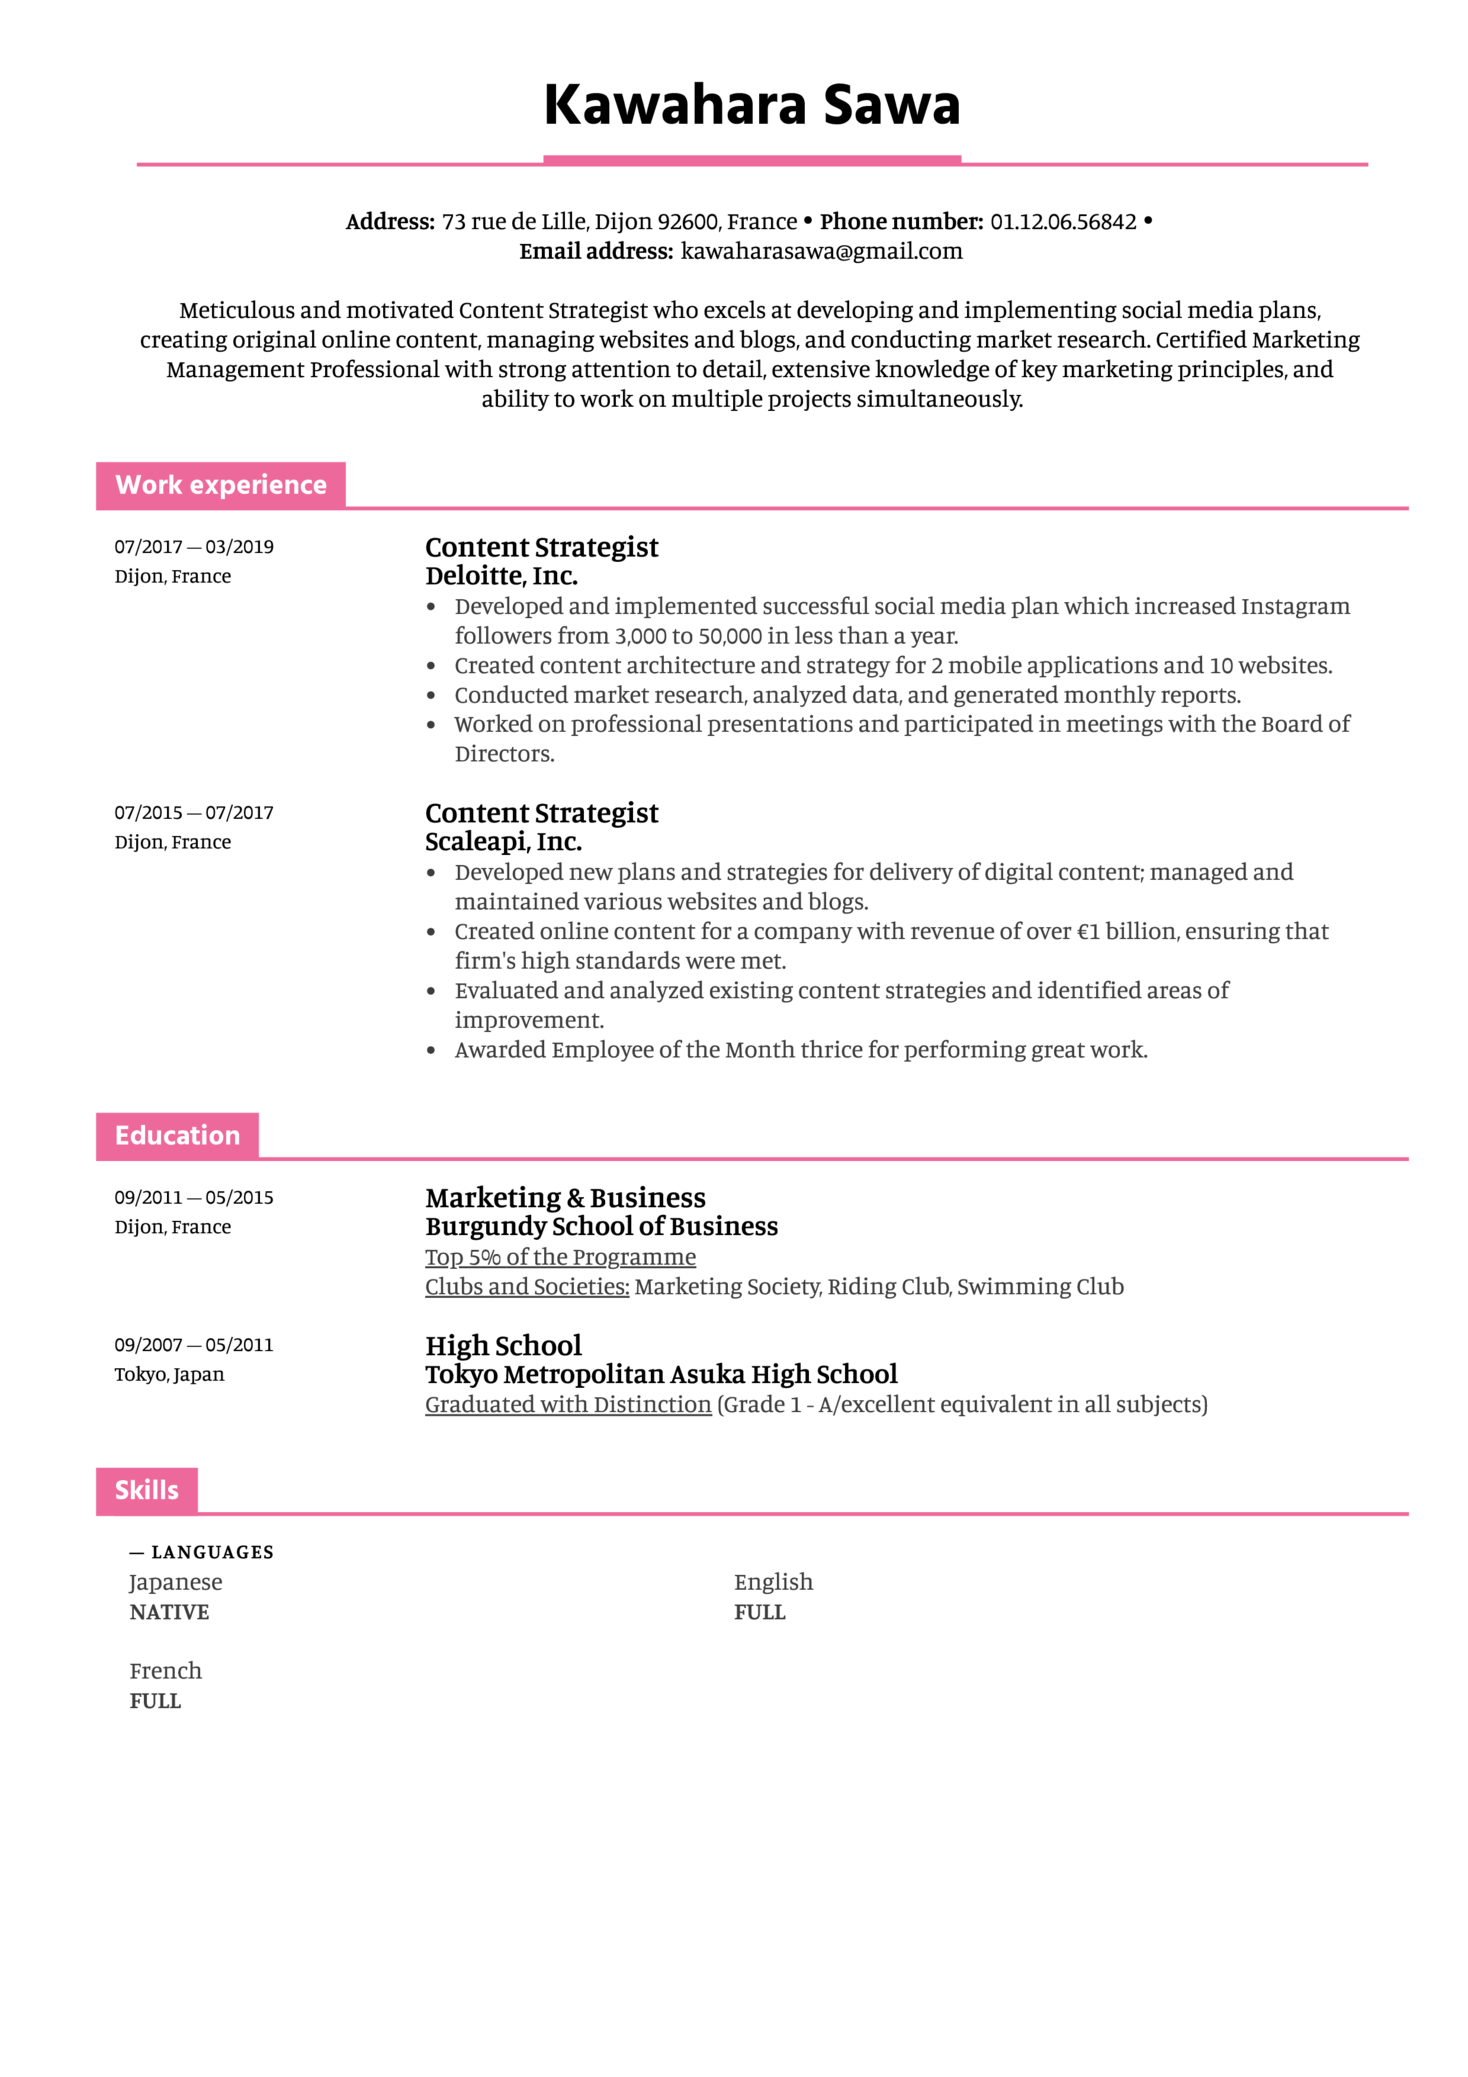 Content Strategist Resume Template